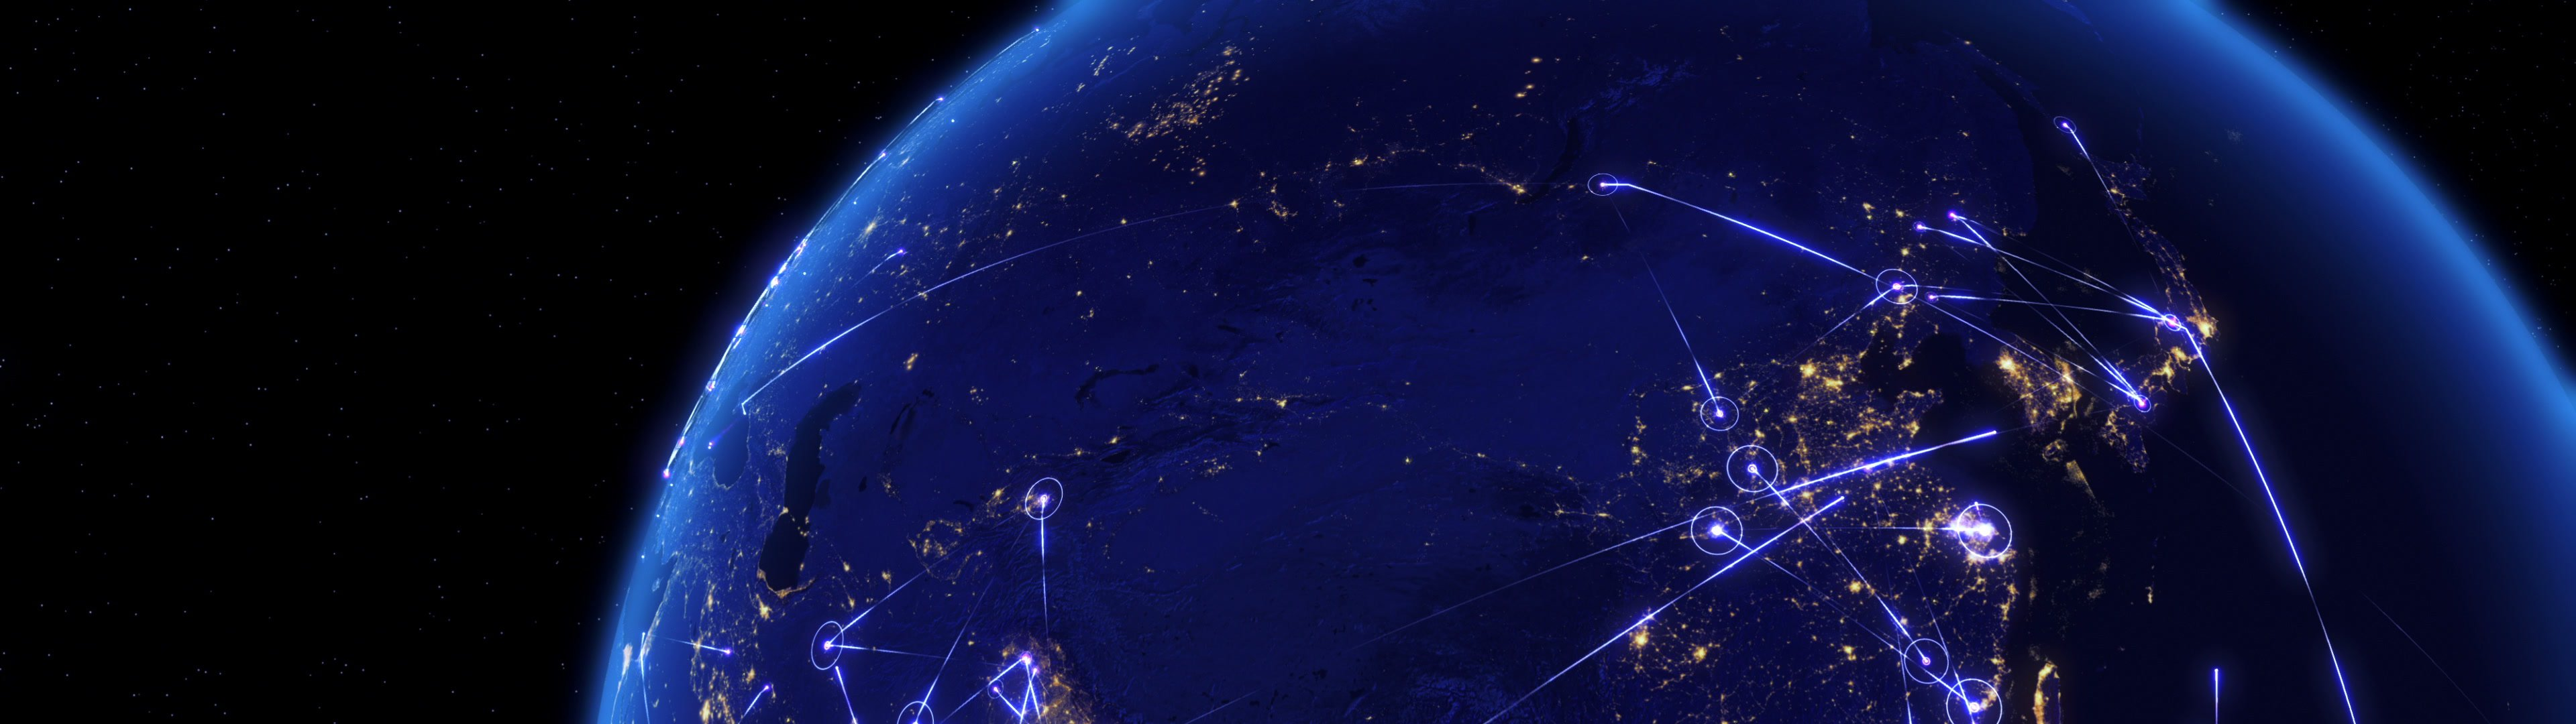 Global communications through the network of connections over Asia. | Global communications through the network of connections over Asia. Concept of internet, social media, traveling or logistics. High resolution texture of city lights at night. 4k - Ultra HD. - ID:22869